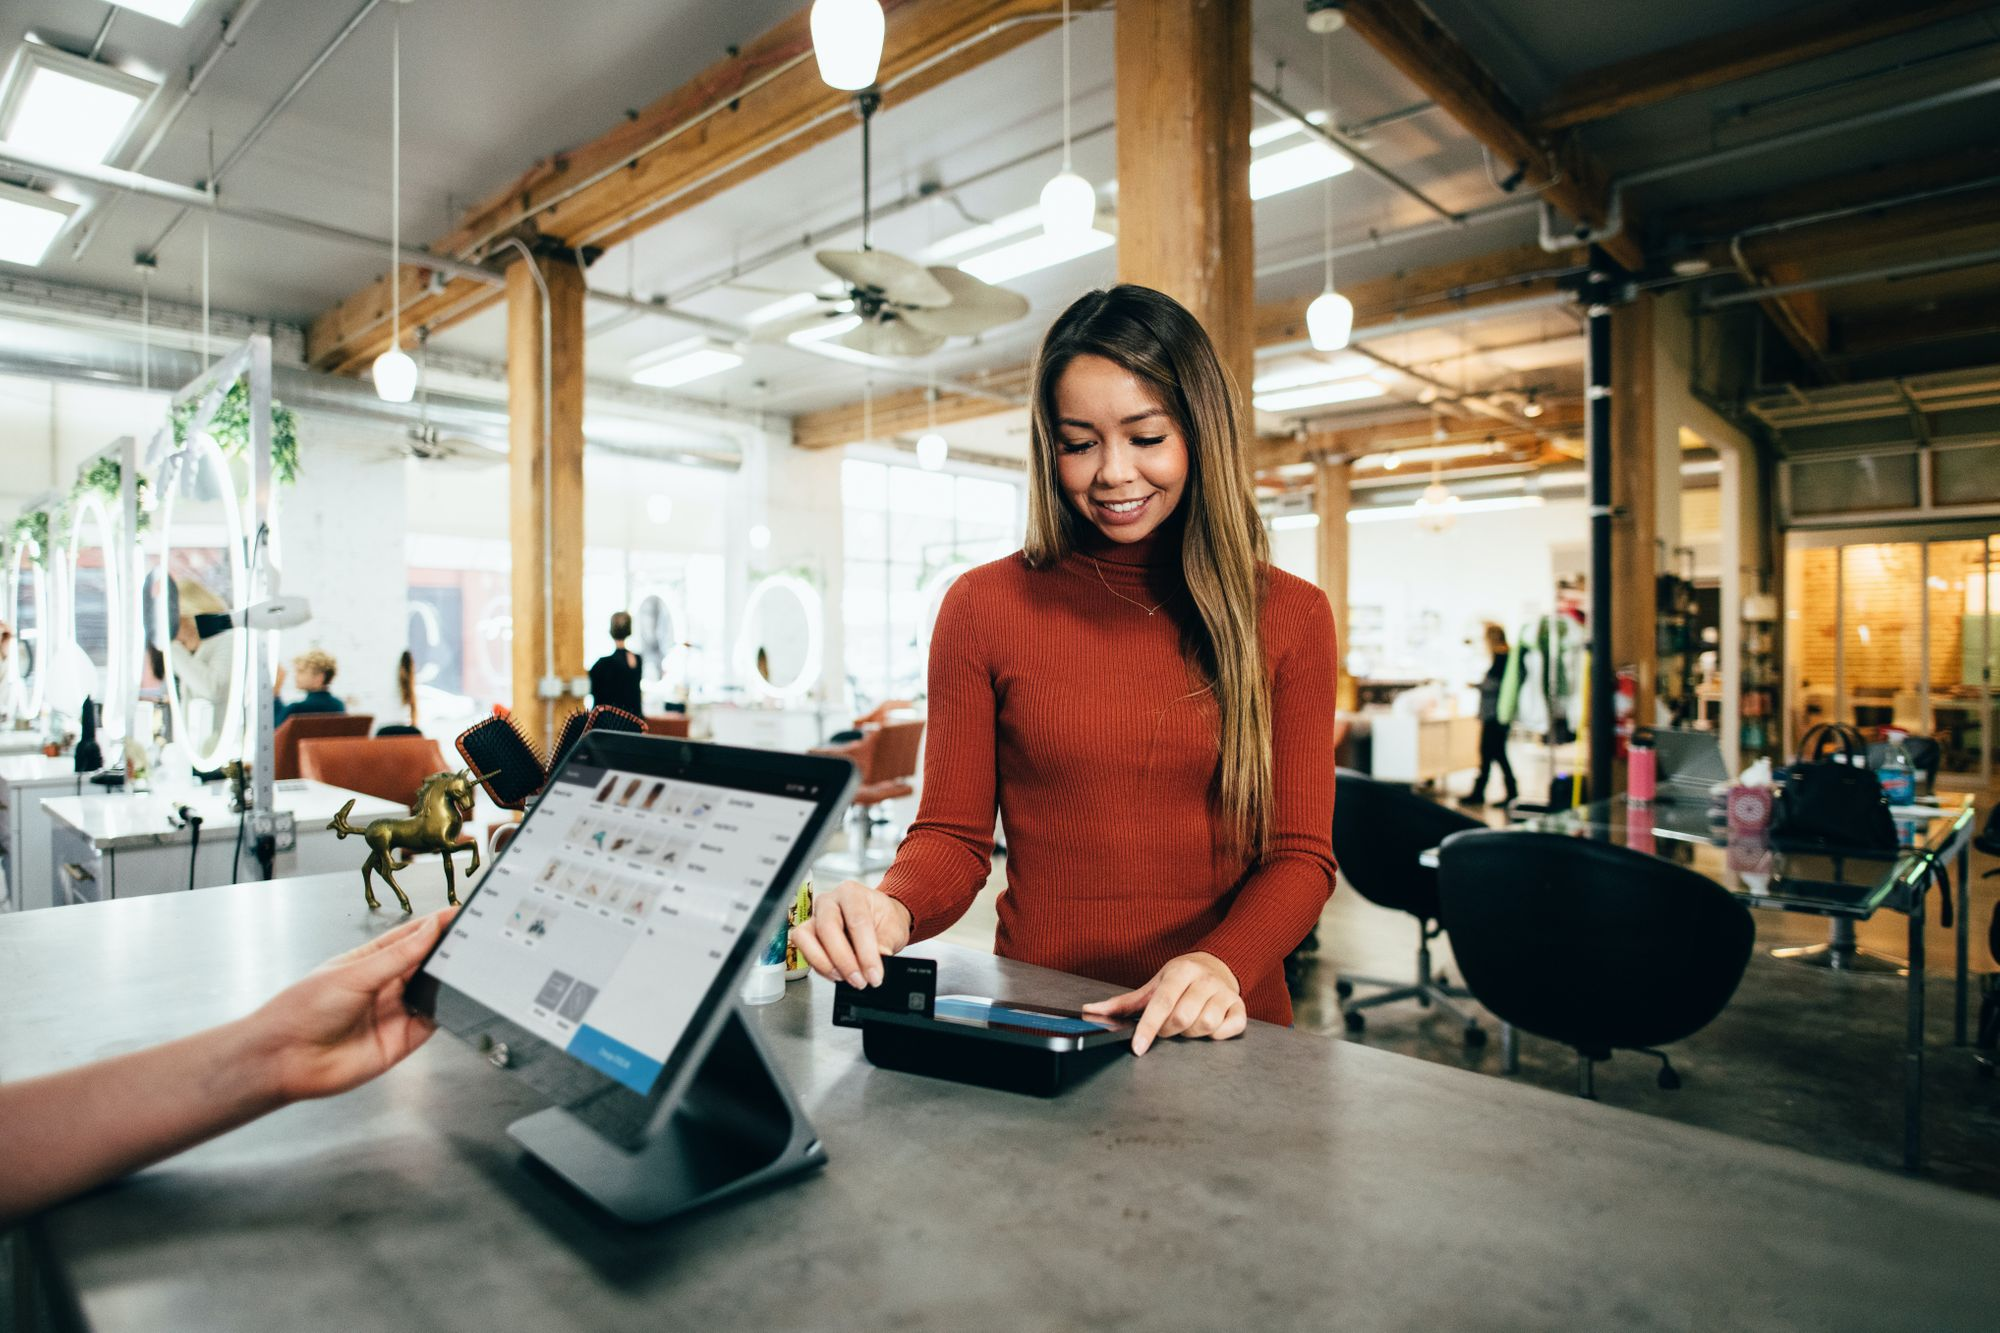 B2B Payment Solutions; Top 7 Factors to Consider Before Choosing a Business Payments Solution - Fliqpay blog